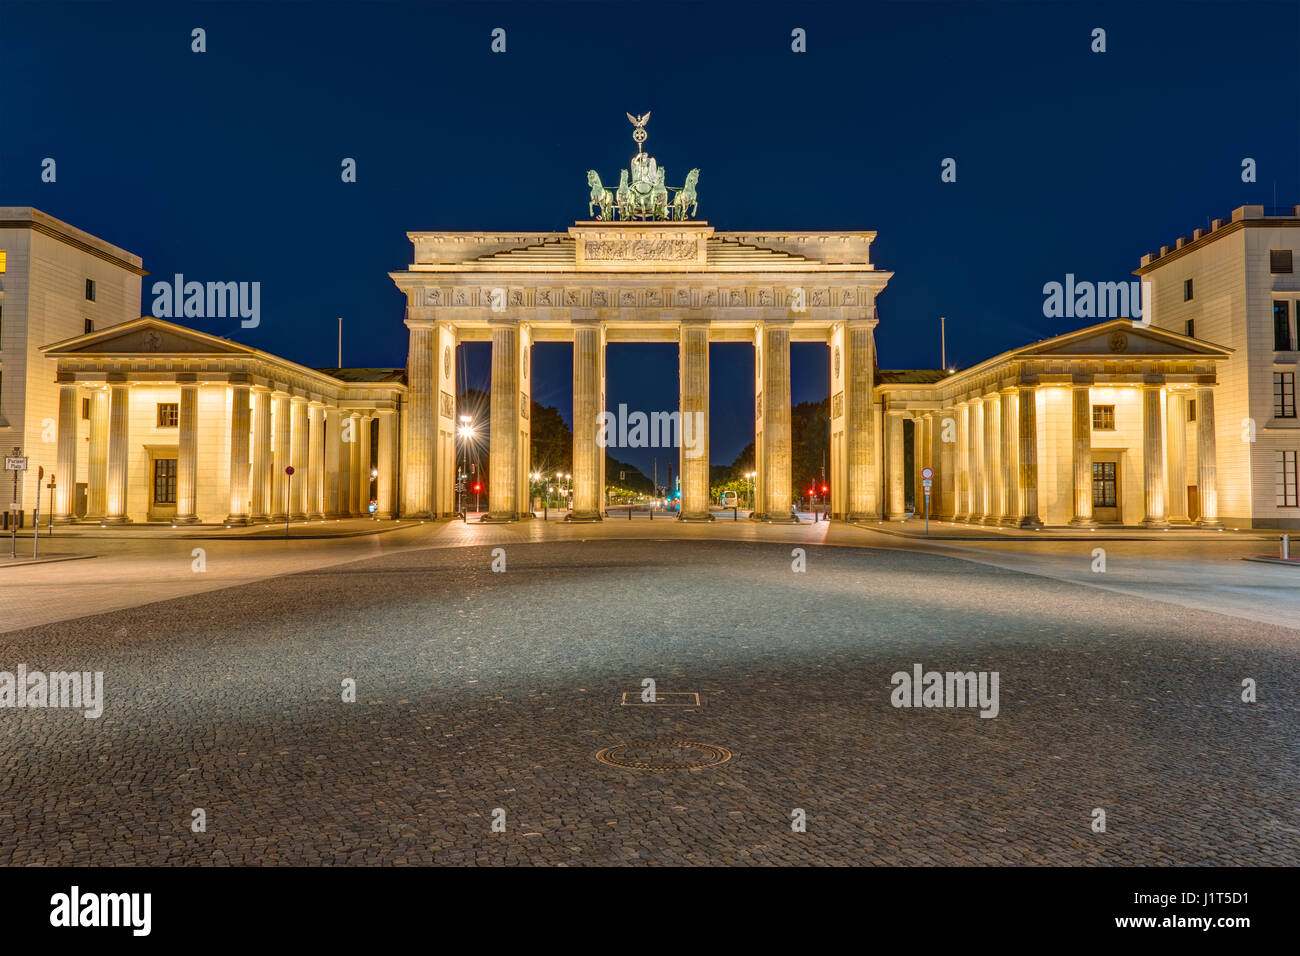 The famous Brandenburg Gate in Berlin illuminated at darkness - Stock Image